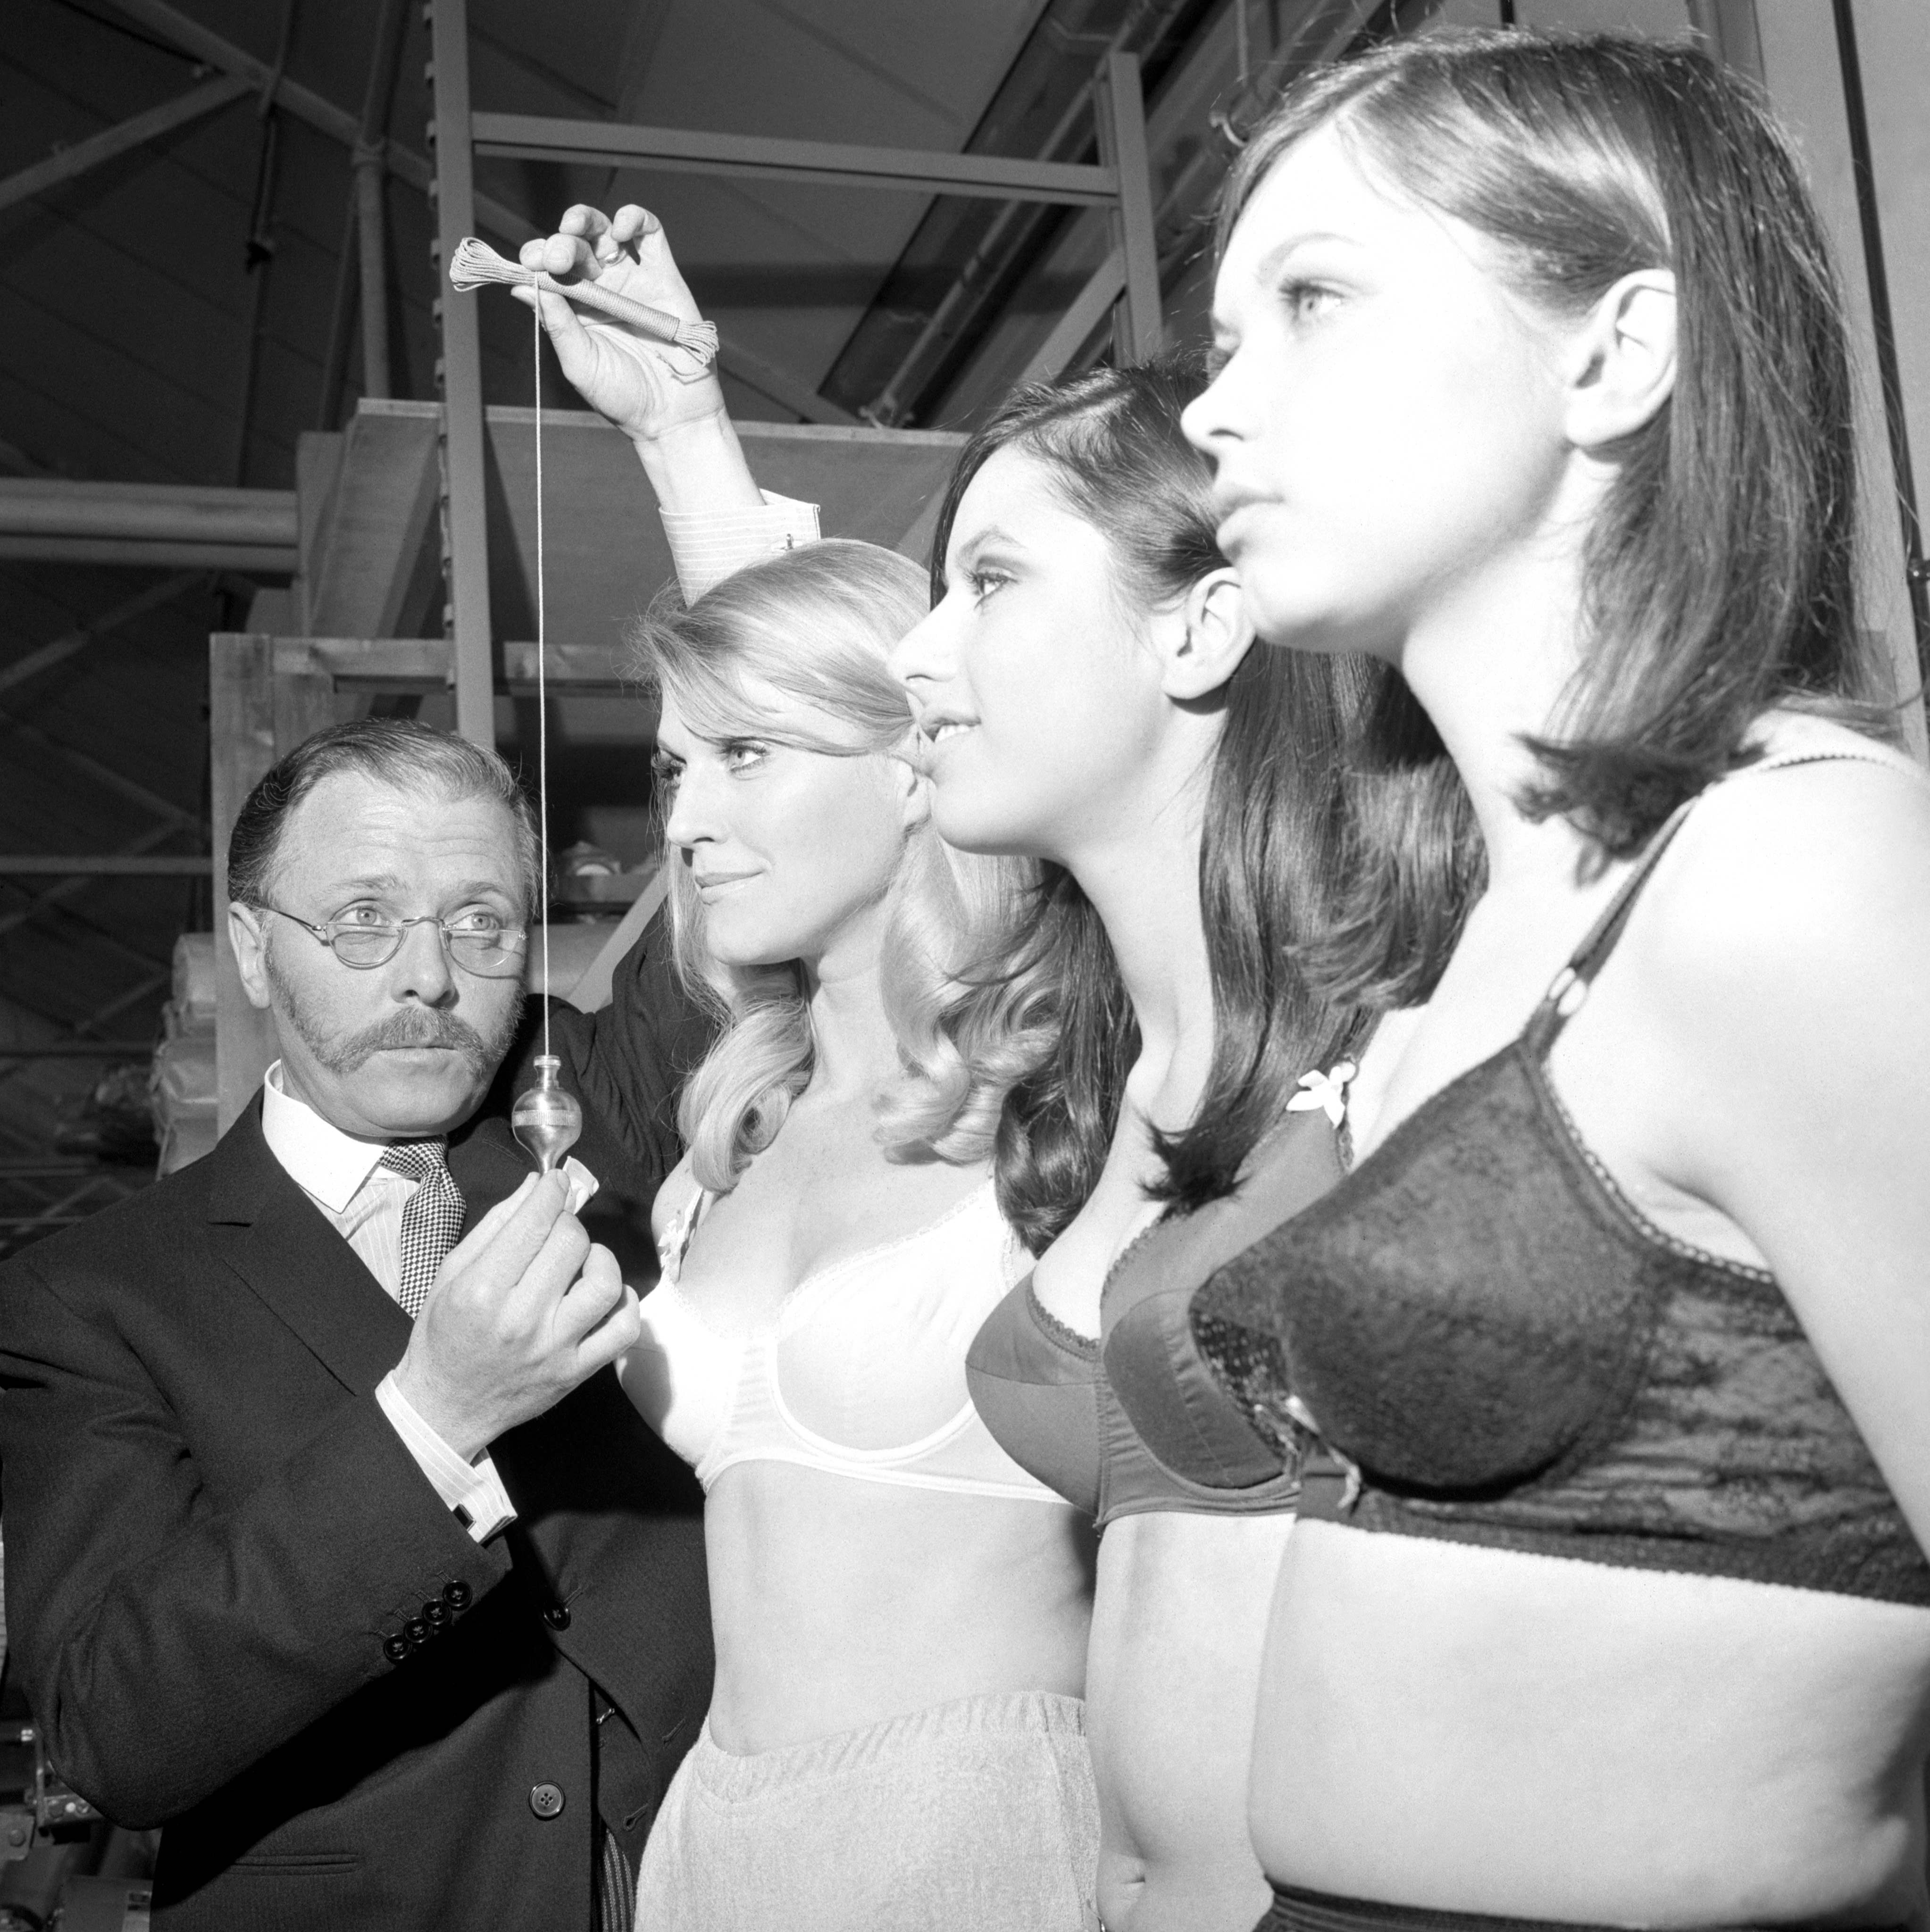 Robin Tolhurst, Sadie Cole and Margaret Bass line up at the Berlei Foundation Garment Factory in Slough to pose with Richard Attenborough, as he begins filming The Bliss of Mrs Blossom. He plays a brassiere manufacturer with an ambition to create an inflatable universal bra, 1967.